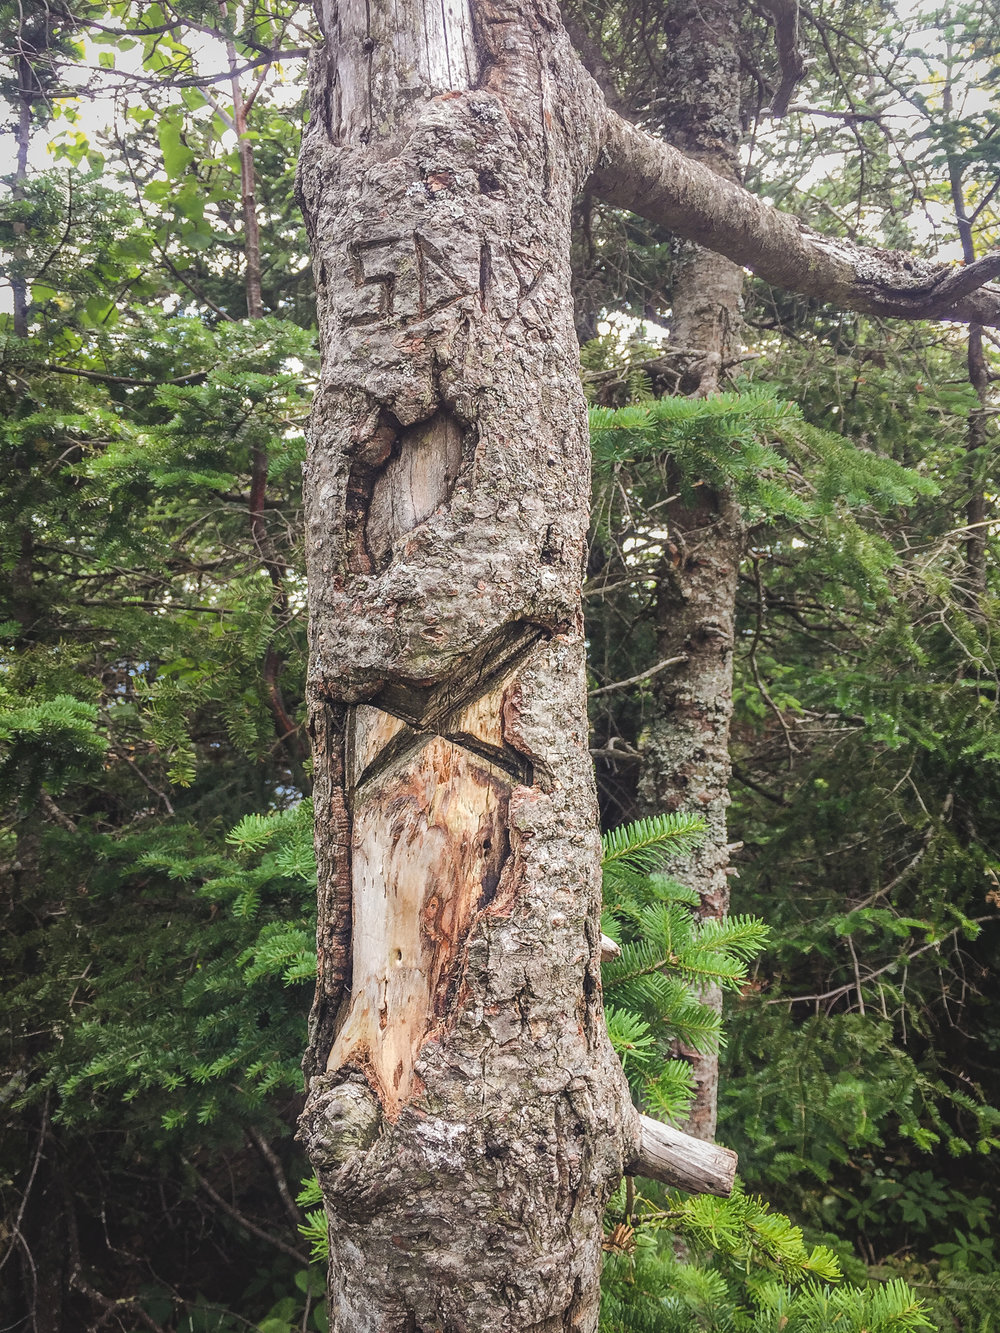 Tree carving signifying the summit of South Dix